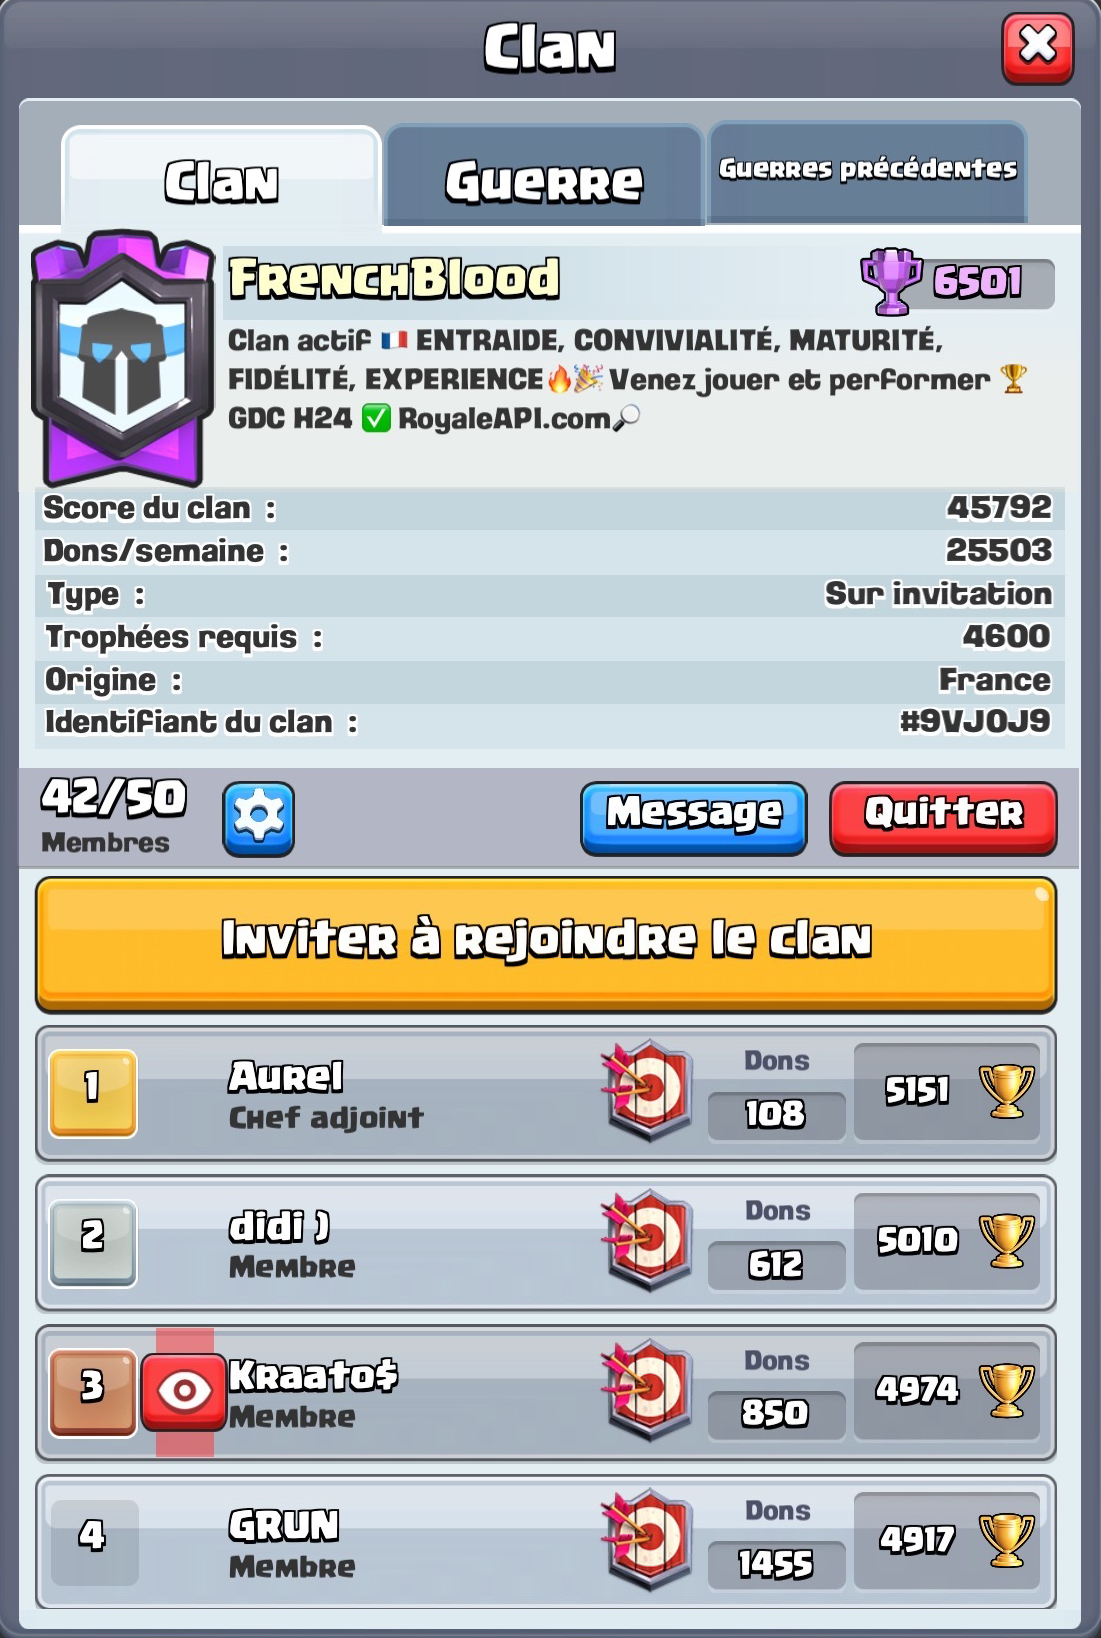 FrenchBlood : Haut niveau, Top 200 Ladder & GDC